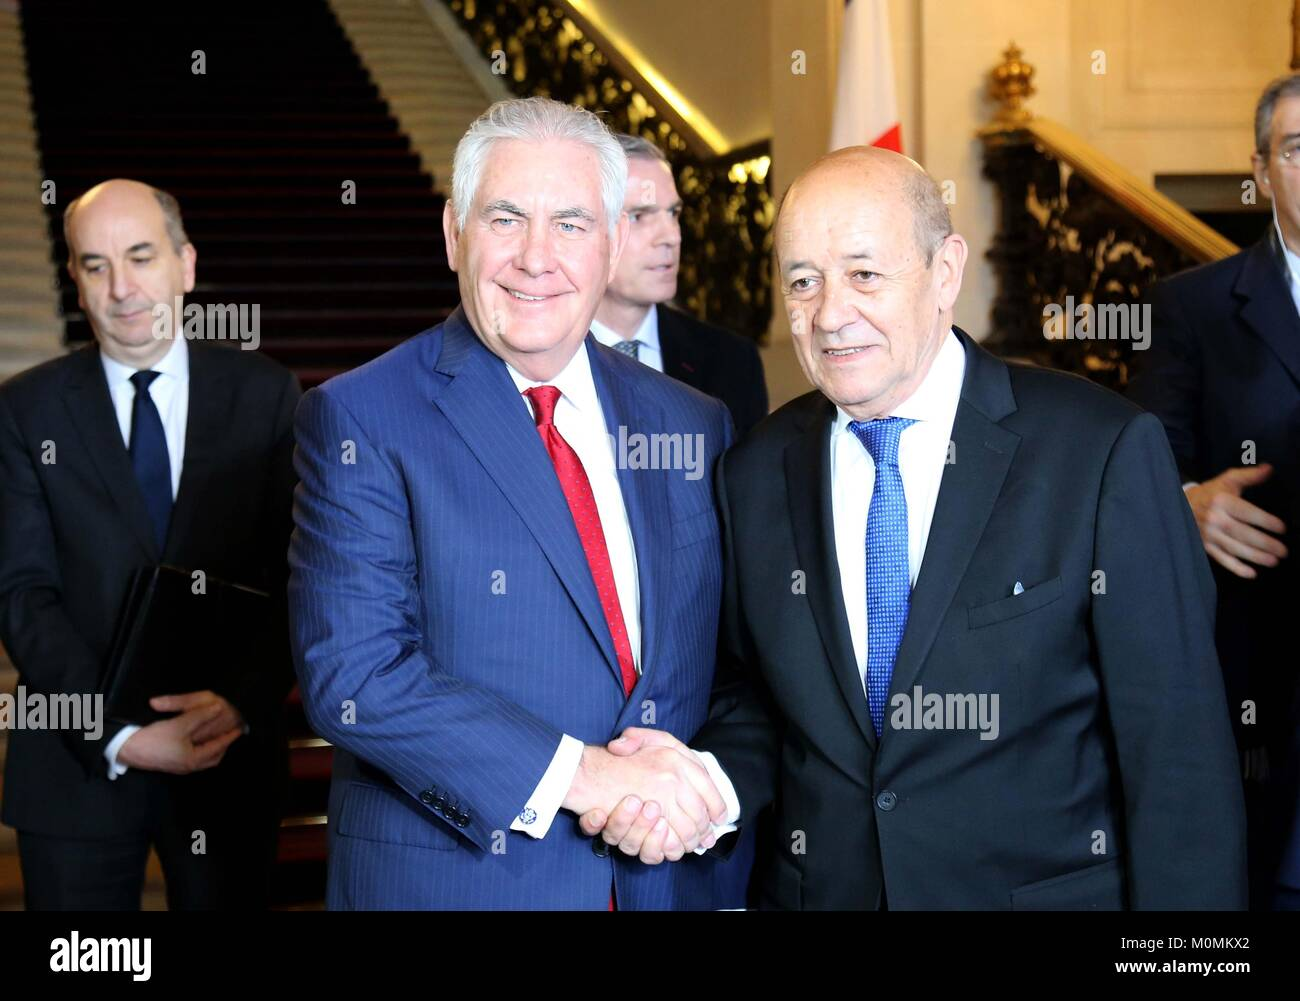 Paris, France. 23rd January, 2018. U.S. Secretary of State Rex Tillerson shakes hands with French Foreign Minister Stock Photo